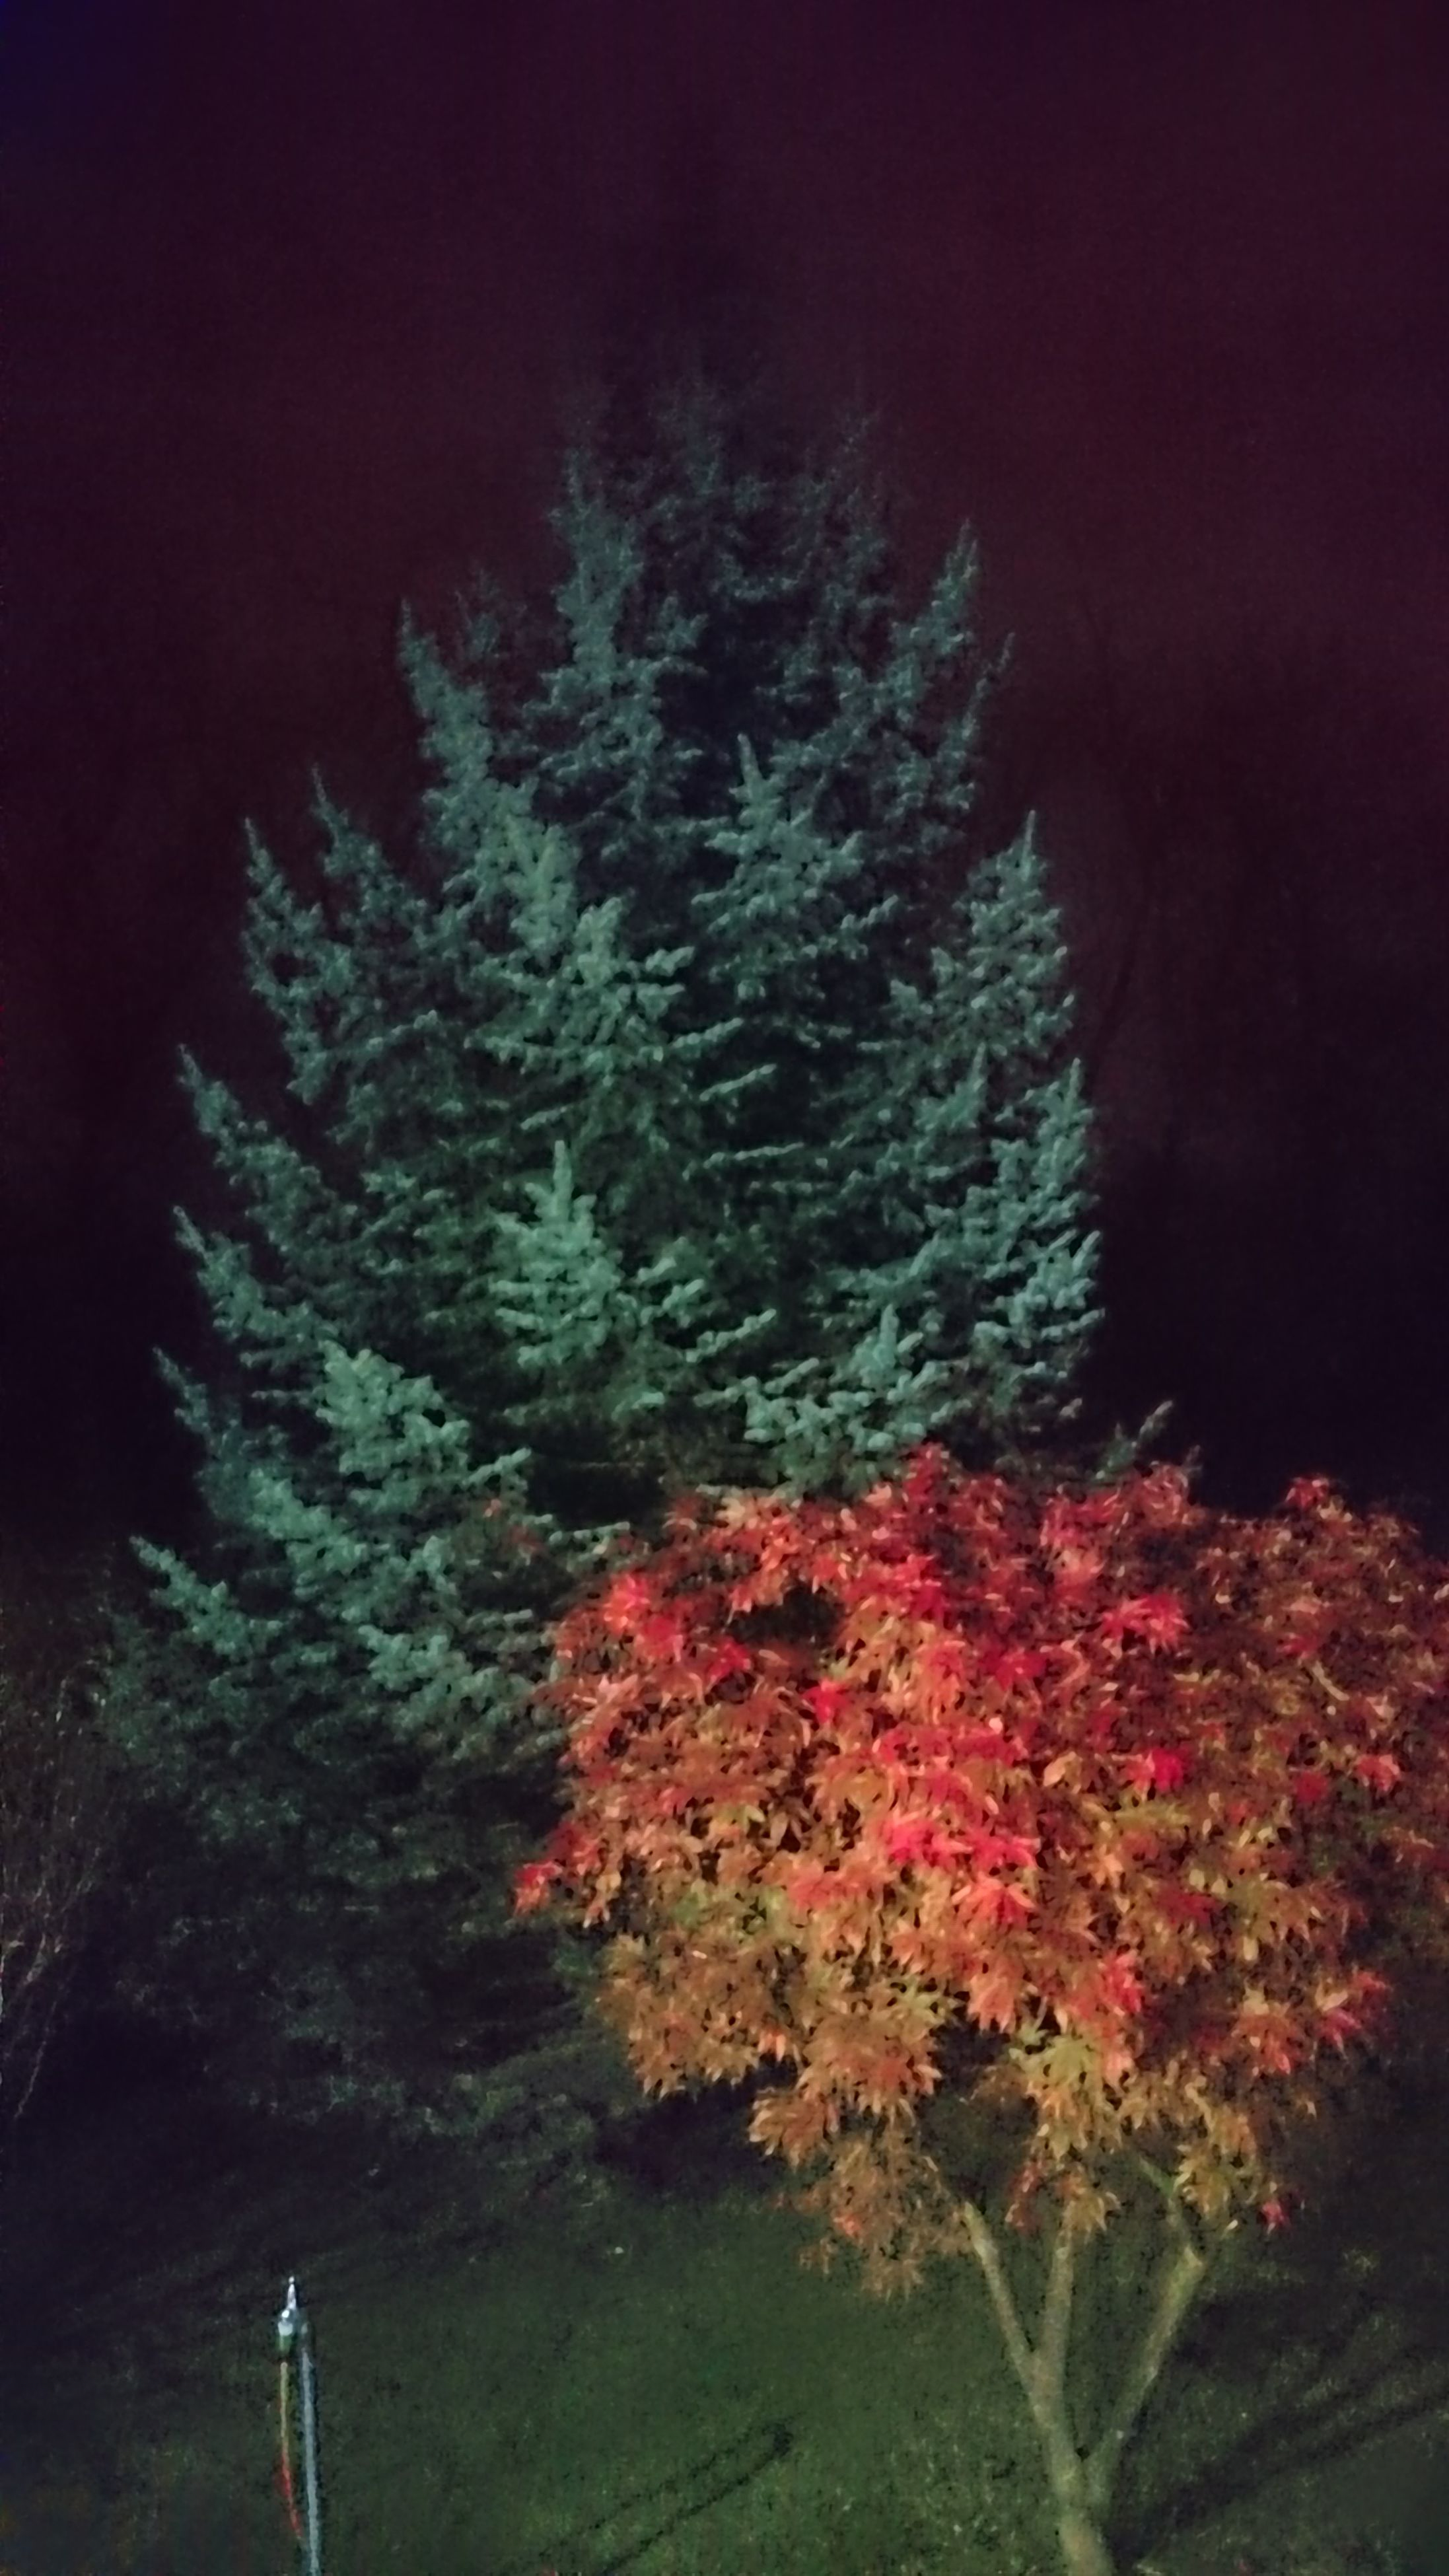 night, growth, flower, plant, nature, red, beauty in nature, tree, leaf, high angle view, no people, outdoors, dark, freshness, branch, green color, tranquility, orange color, illuminated